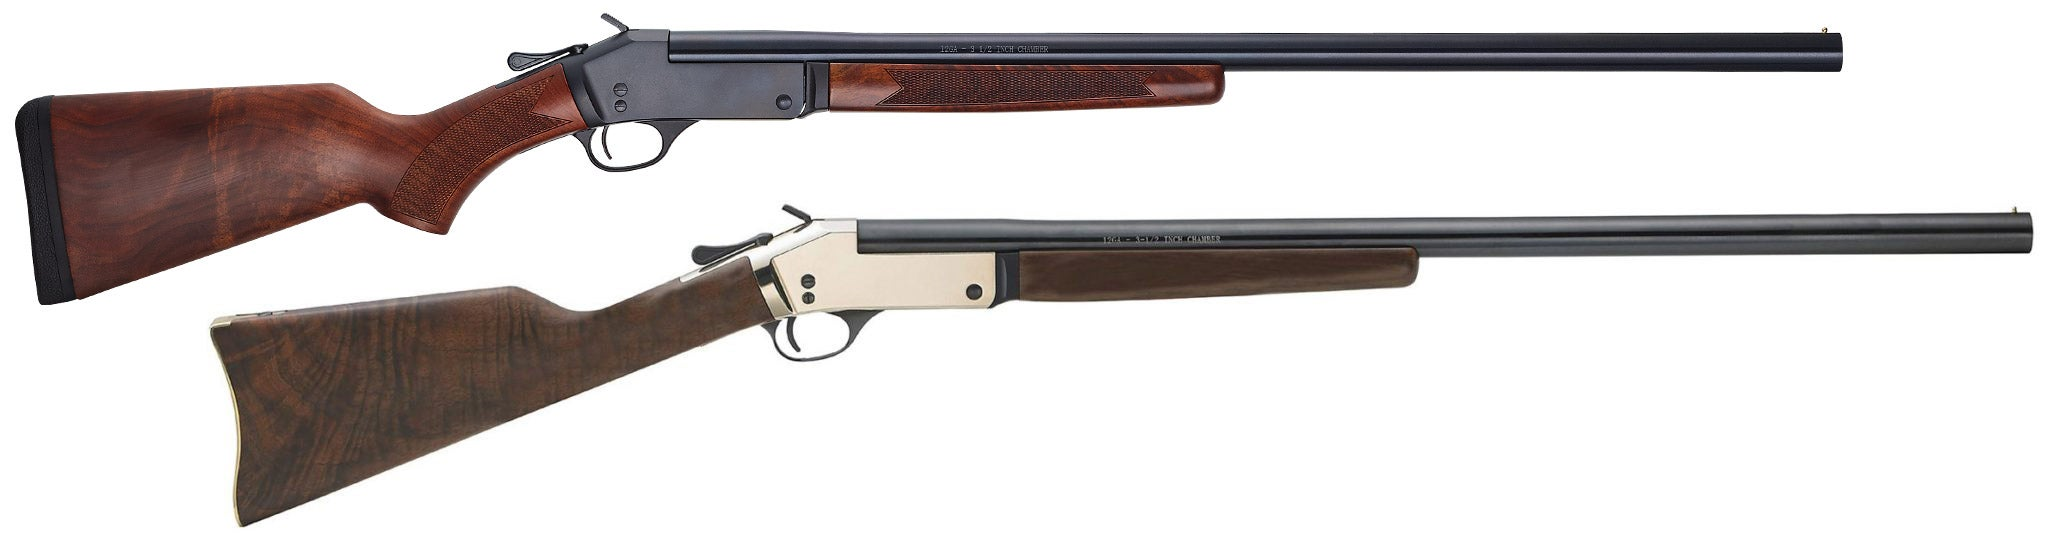 Henry is known for its lever-action rifles, but make a fine single-shot shotgun as well.